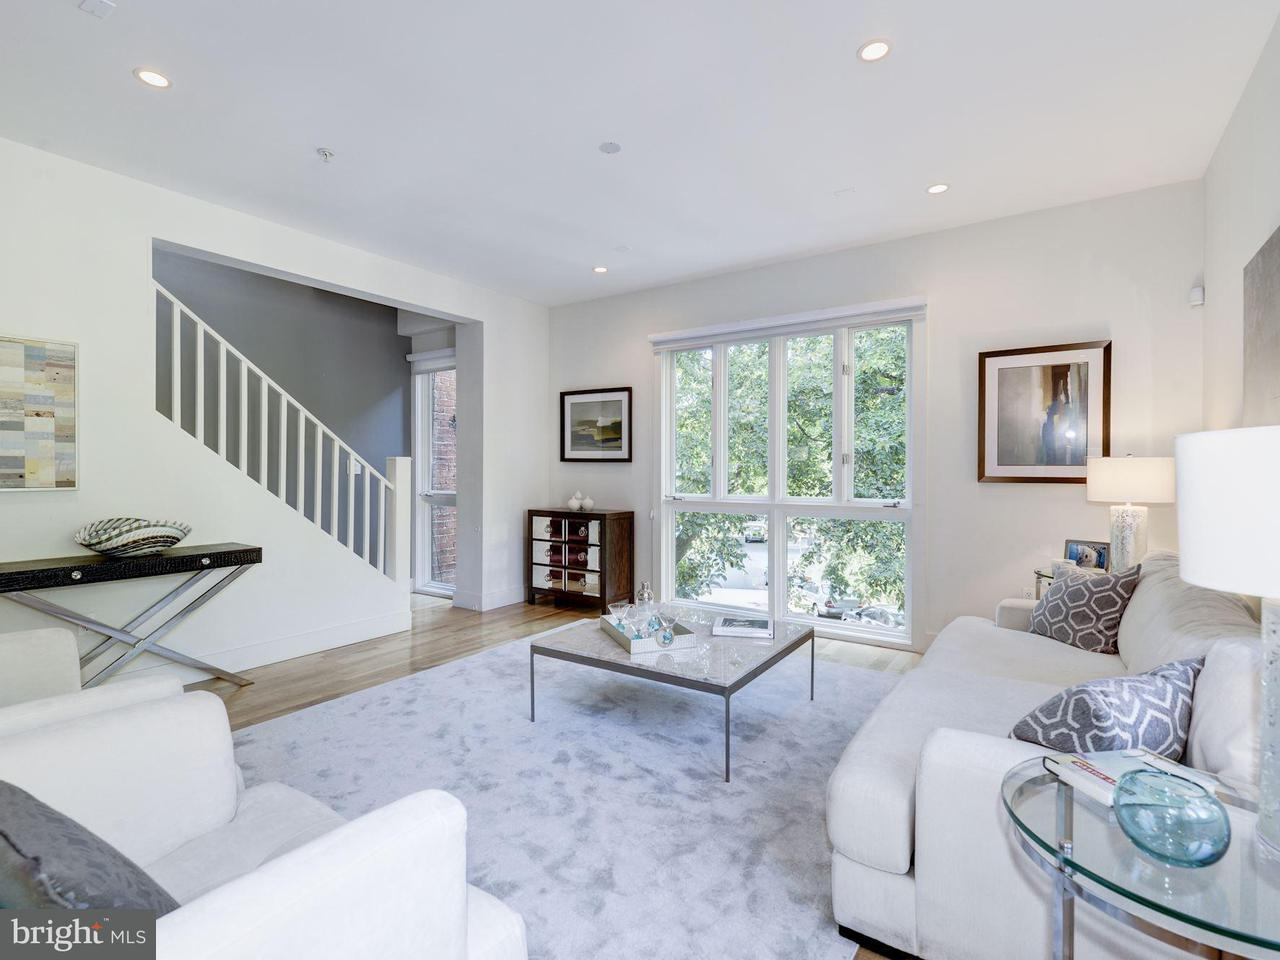 Townhouse for Sale at 1811 ONTARIO PL NW #3 1811 ONTARIO PL NW #3 Washington, District Of Columbia 20009 United States